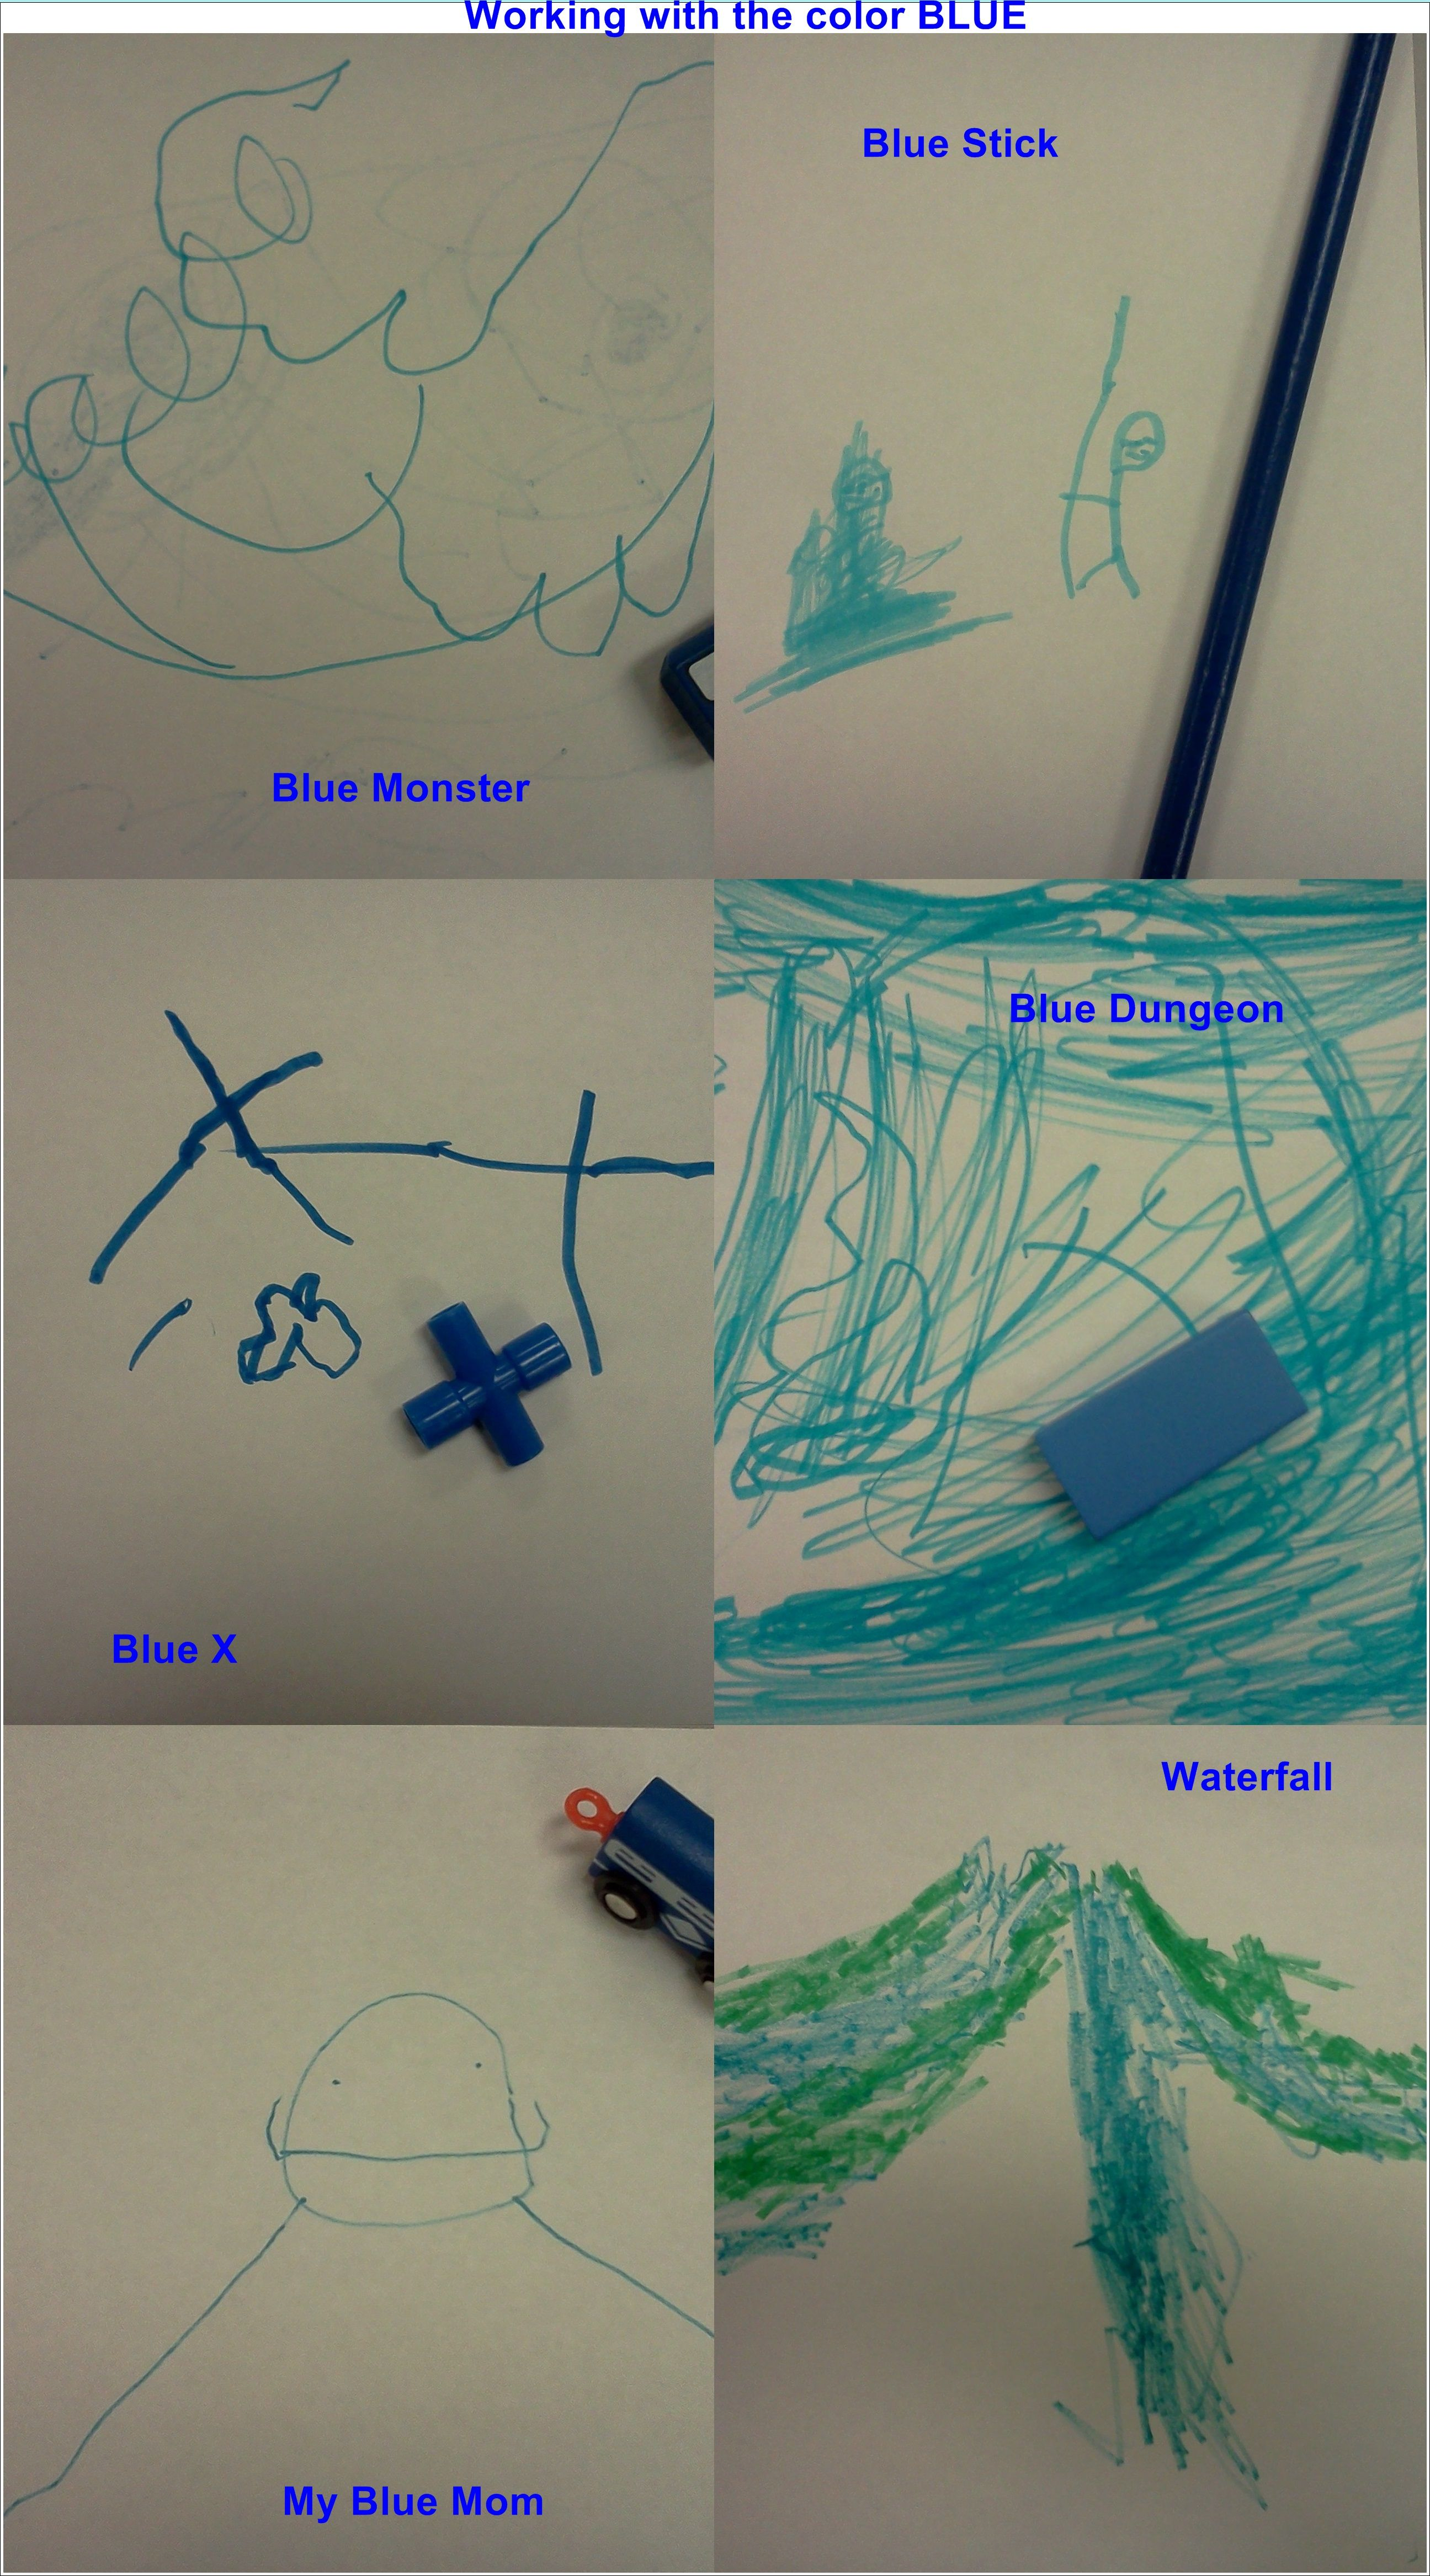 Our Blue pictures, great way to review the color